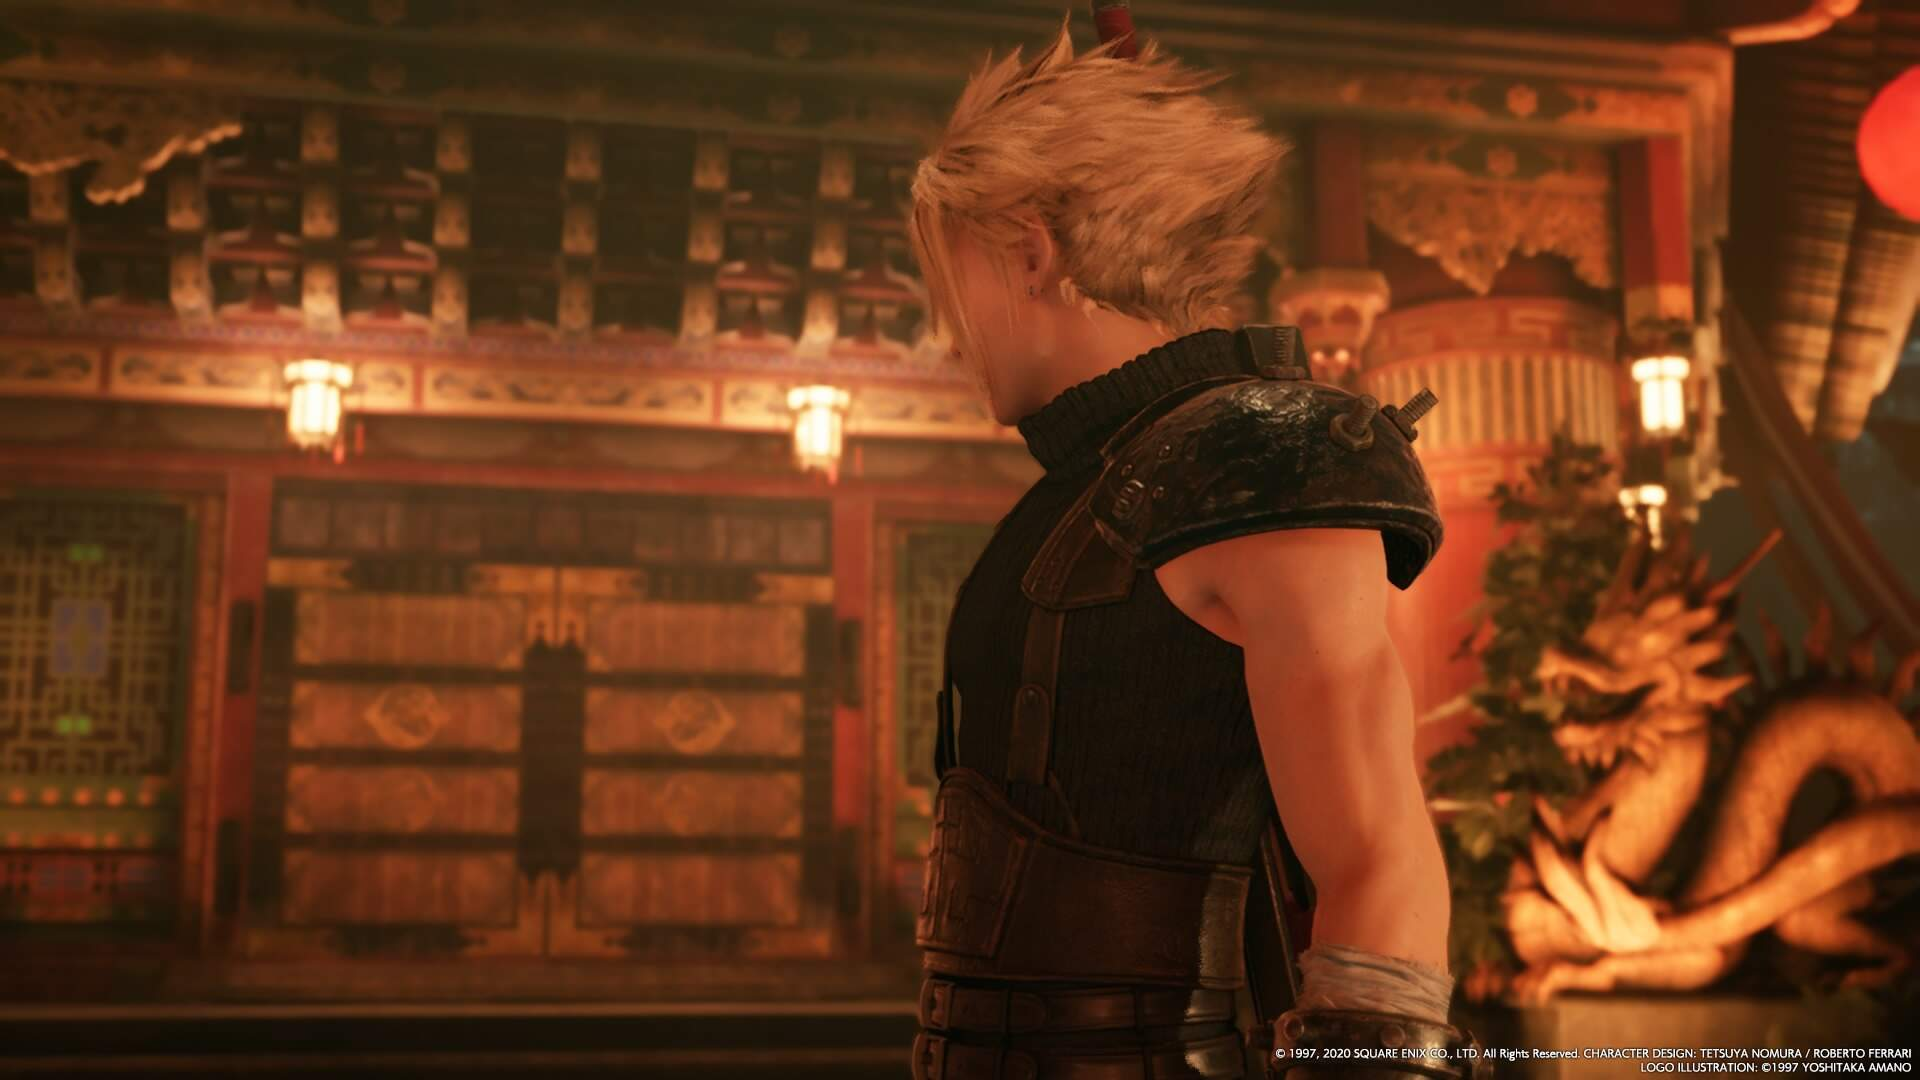 Final Fantasy 7 Remake: Corneo's Vaults Locations